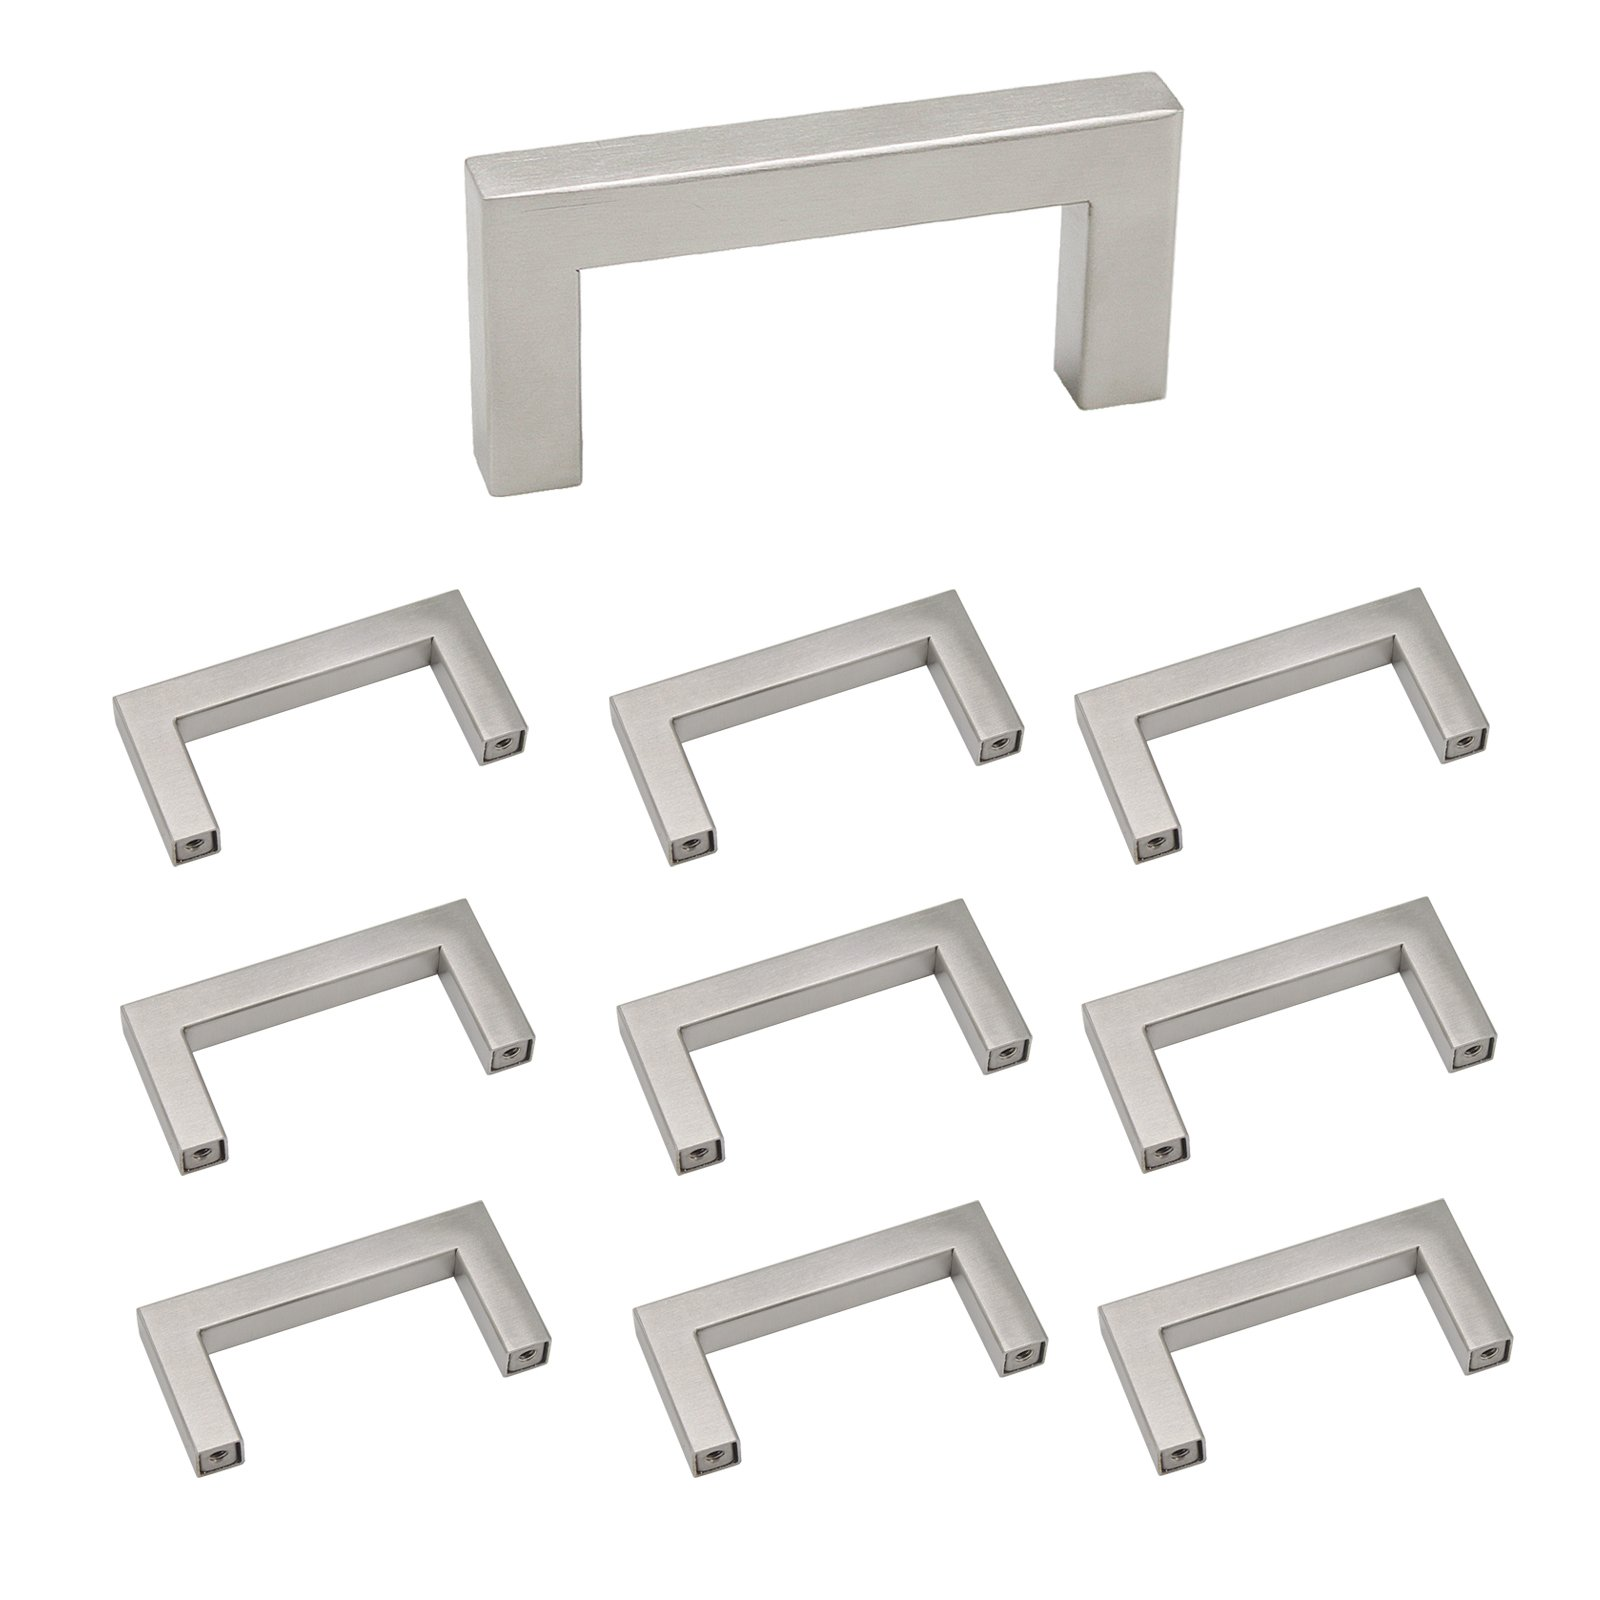 Probrico Brushed Stainless Steel Square Furniture Hardware 2-1/2 Hole Centers Cabinet Dresser Handles, 10 Pack